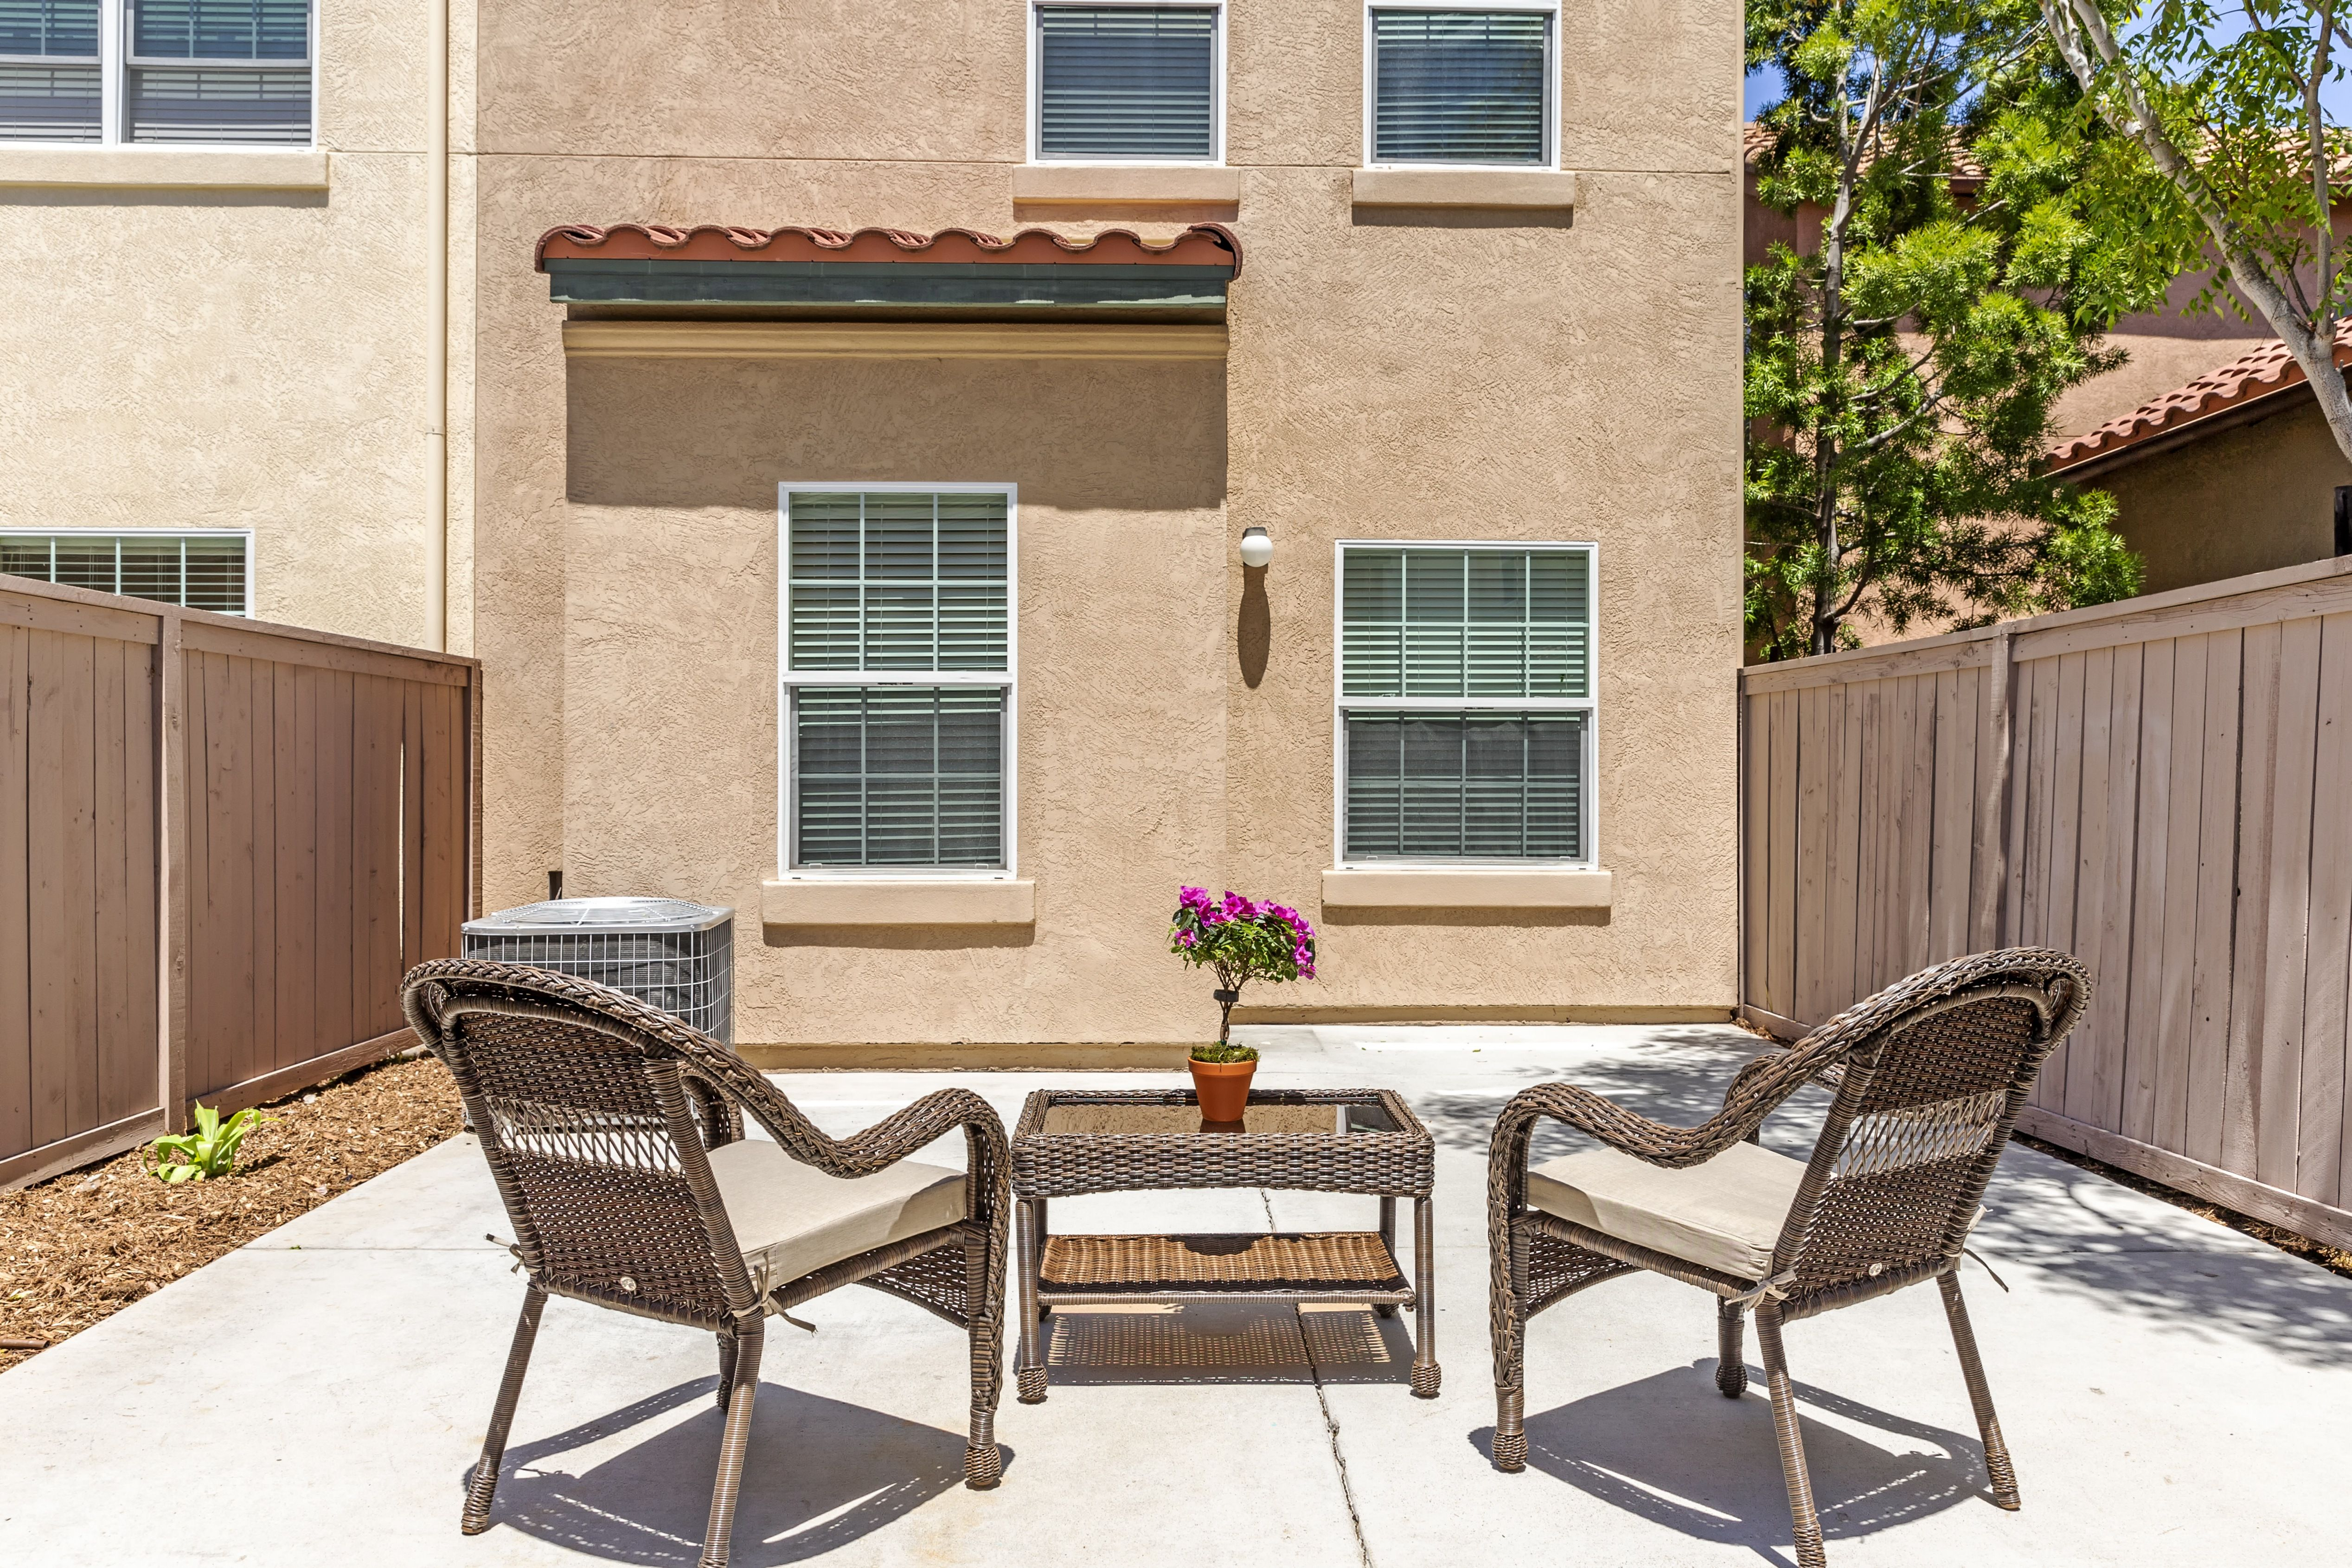 Gallery Gateway Village Lincoln Military Housing Lincoln Military Housing Military Housing San Diego Military Housing